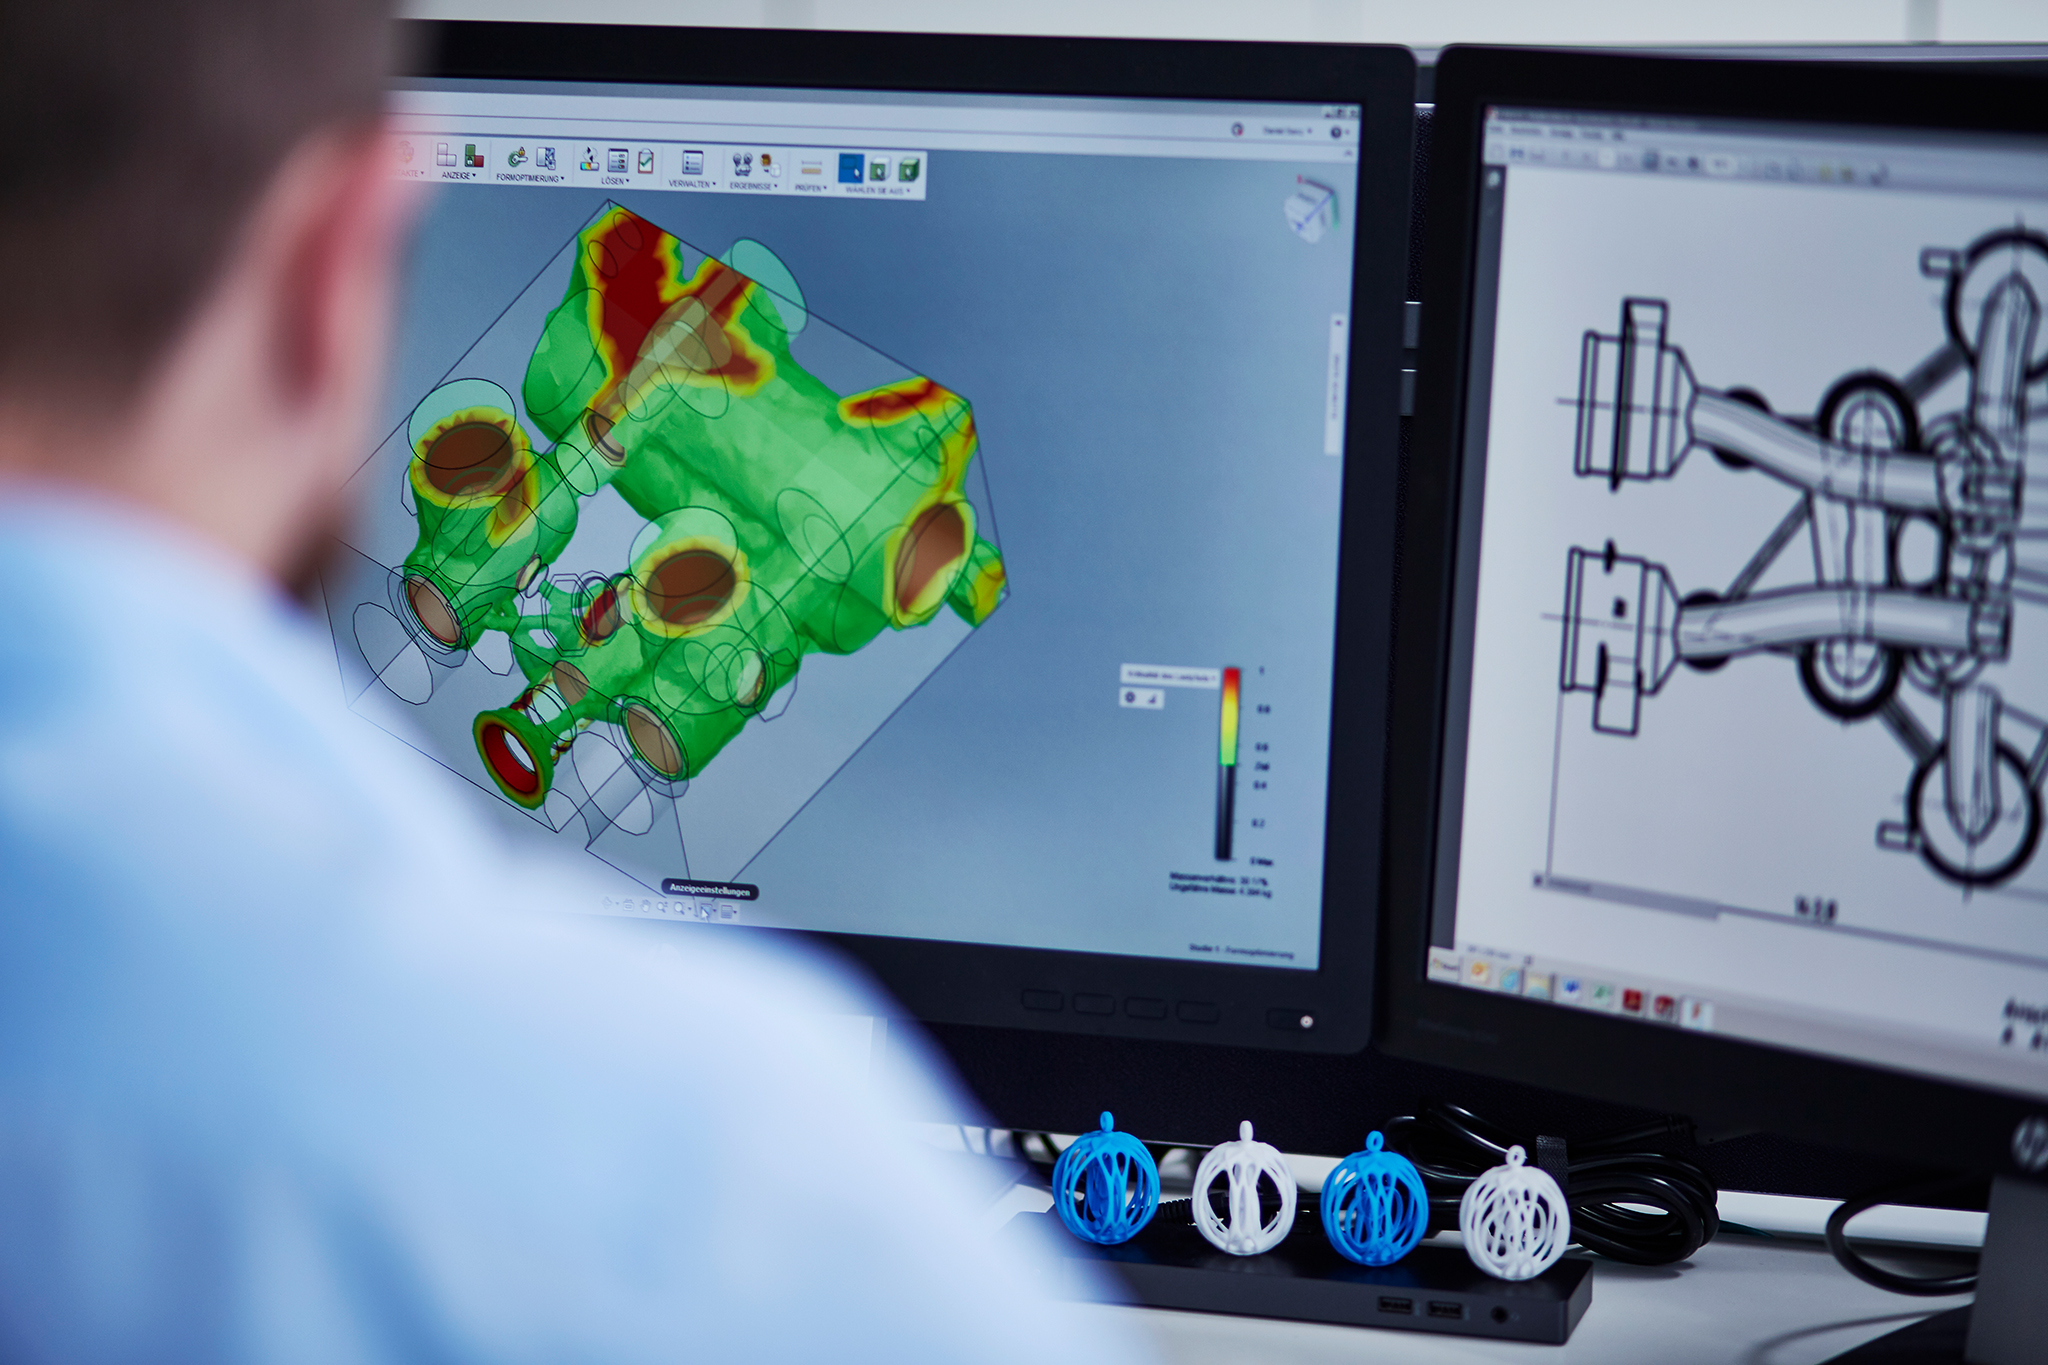 With Additive Manufacturing, thyssenkrupp Marine Systems can industrialize the 3D printing of metals and plastics in series production. The planning and manufacturing process is handled digitally.